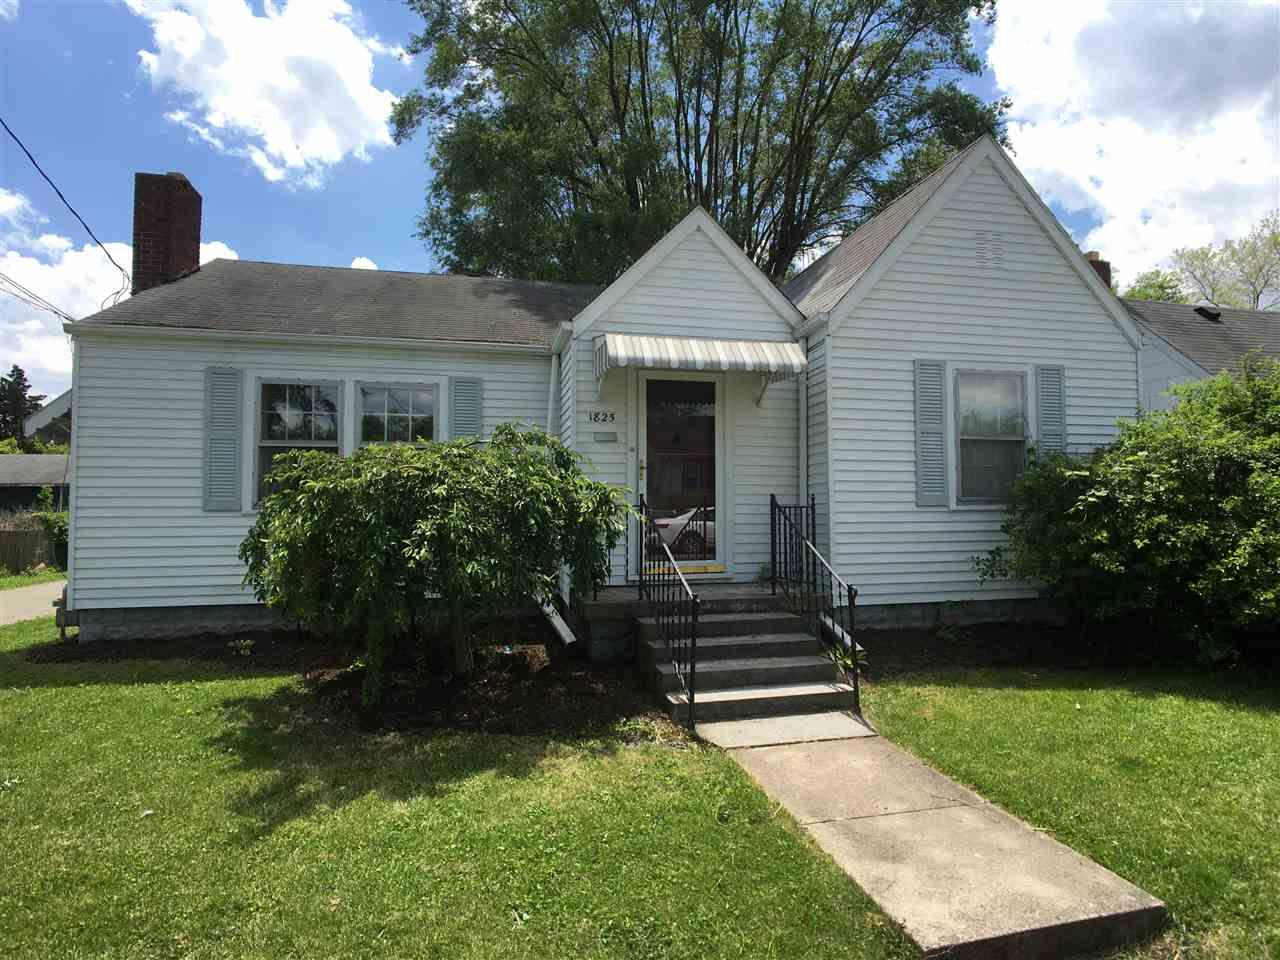 1825 Lincoln, New Castle, IN 47362